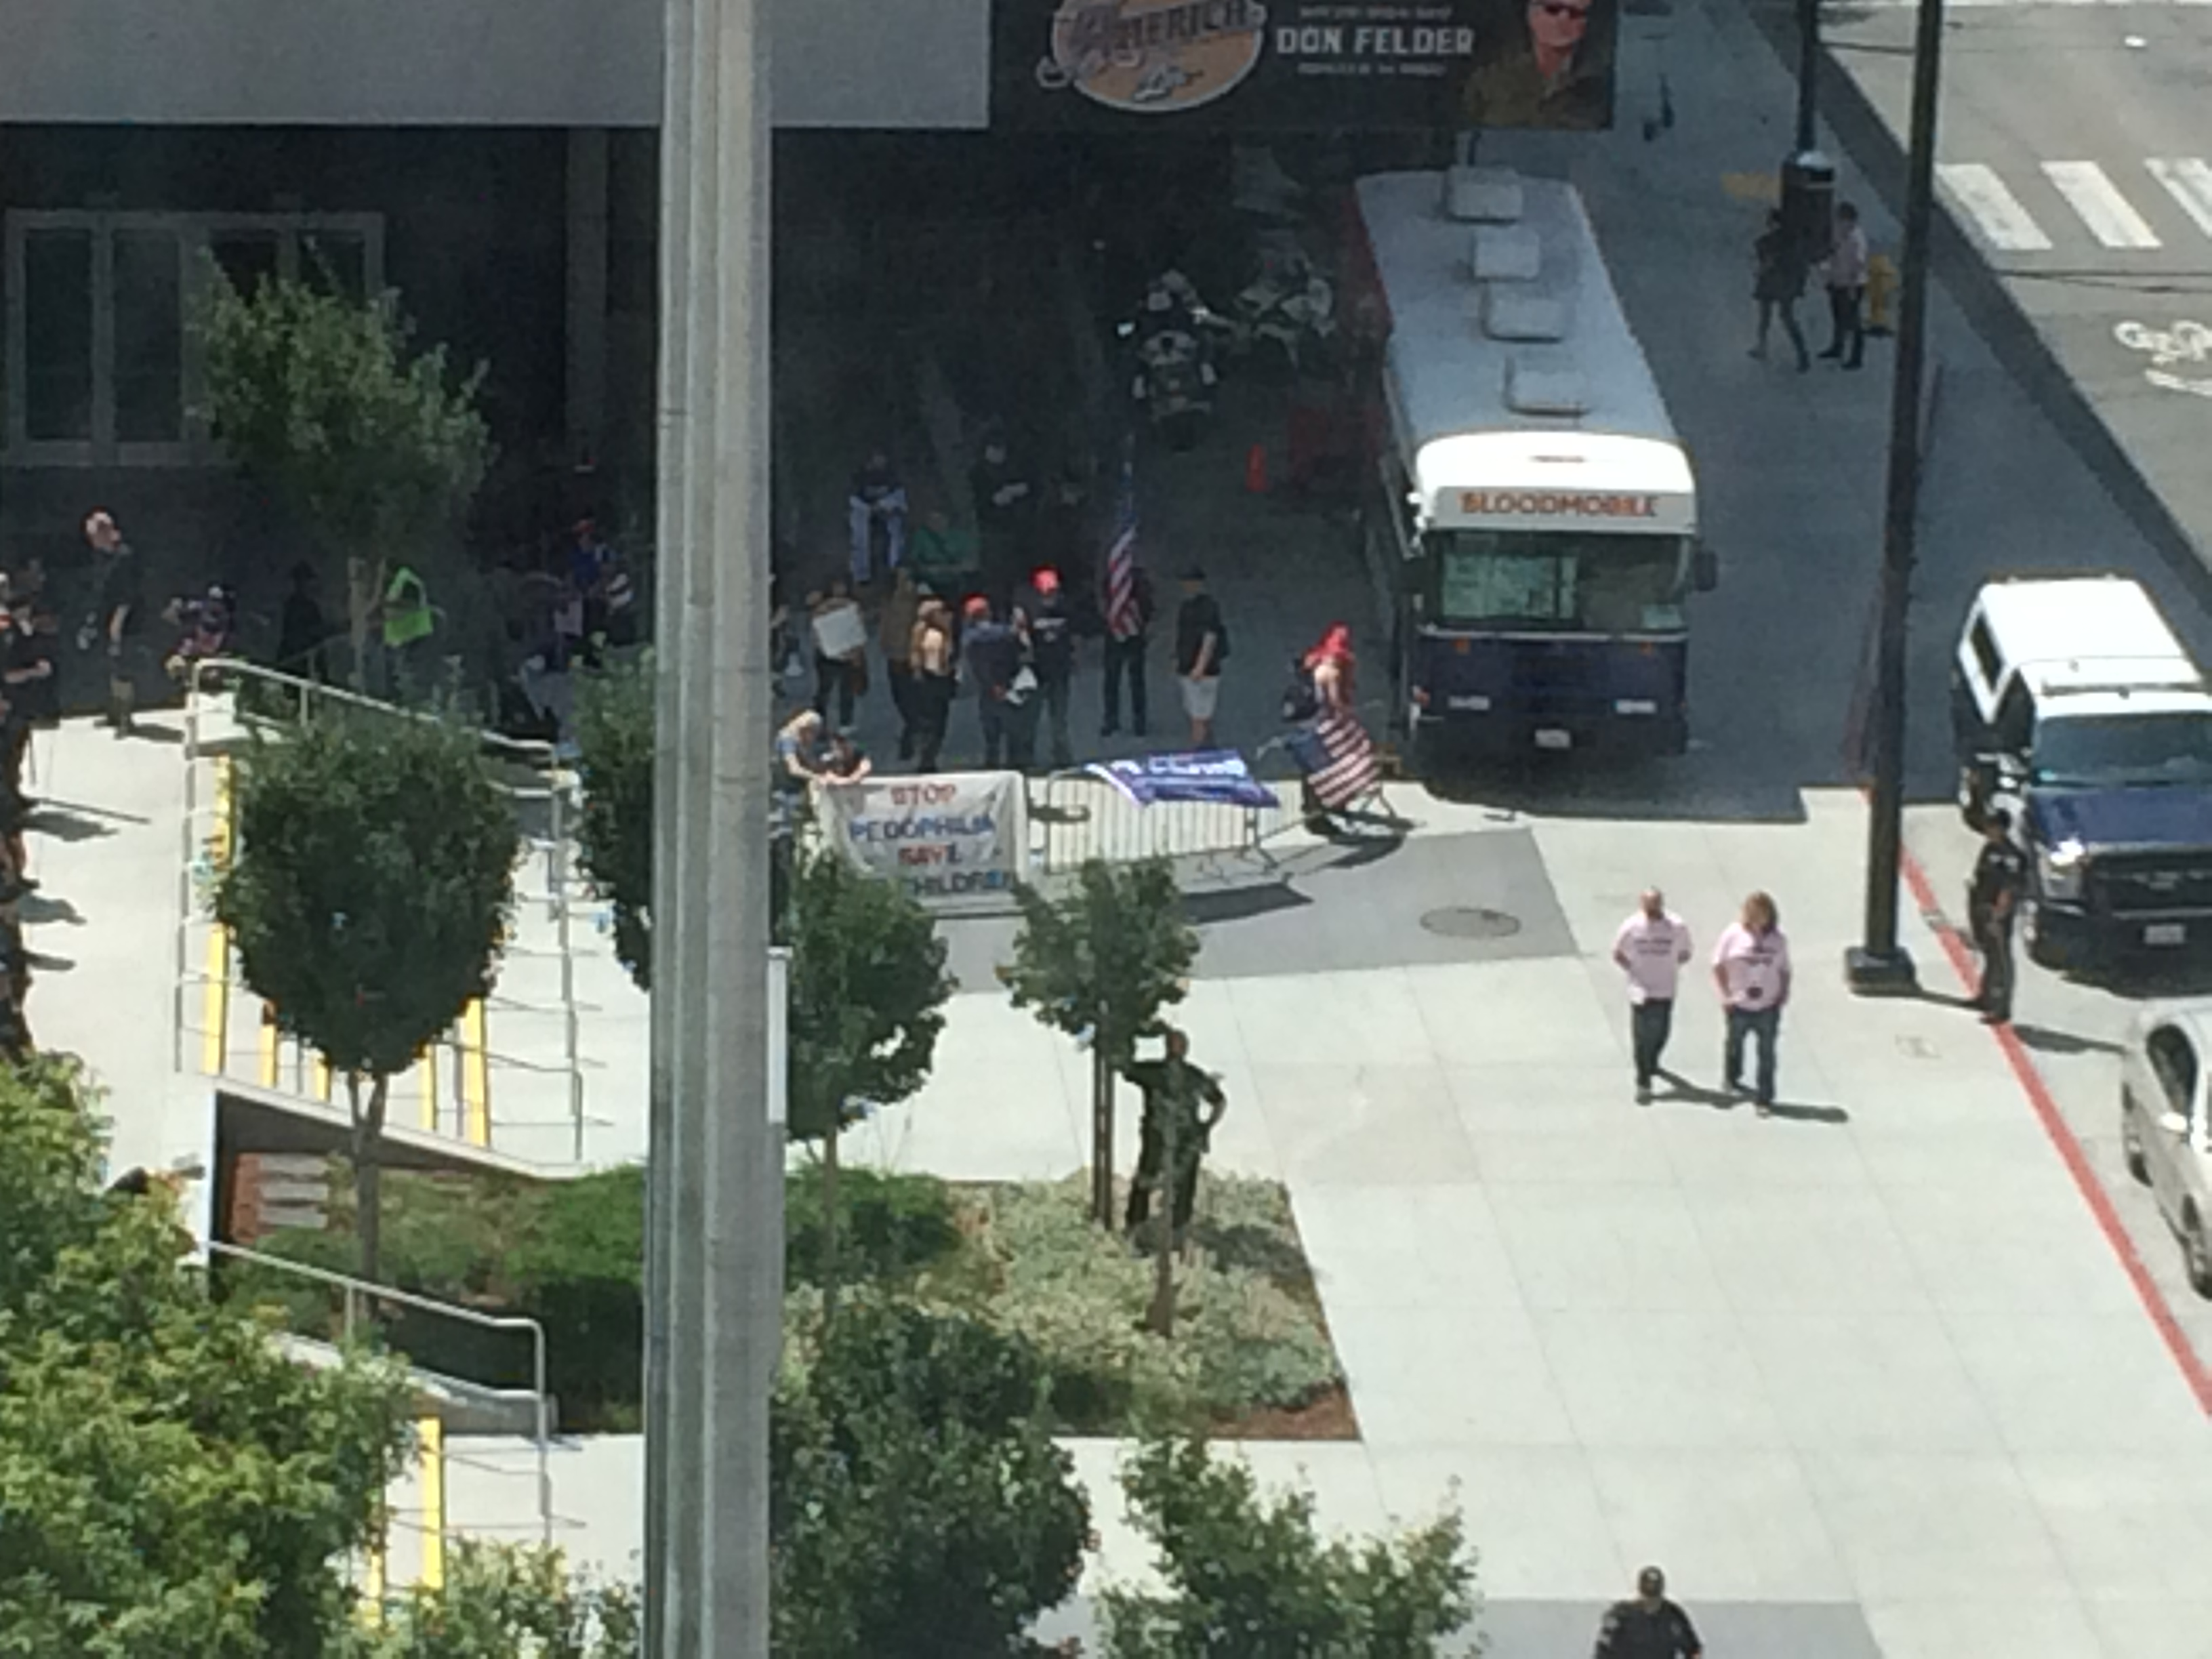 The protest at Worldcon (more police than protestors)